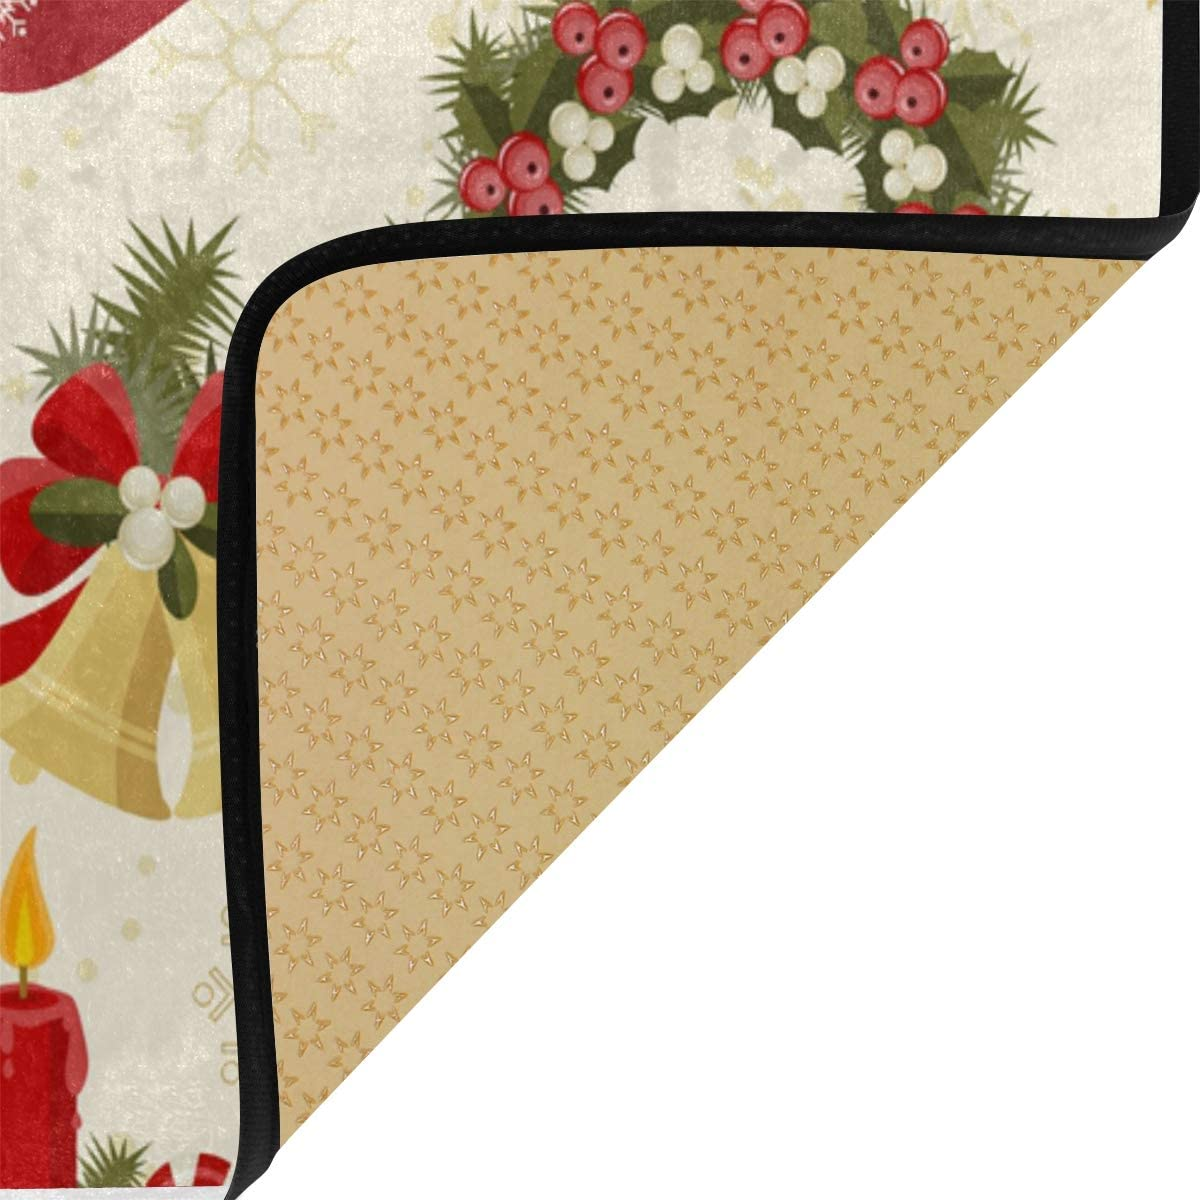 S Husky Kitchen Mat Watercolor Painting Pattern Gorgeous Red Flower Soft Non-Slip Floor Mats Tropical Plants Series Runner Area Rug for Hallway Entryway Bedroom Bathroom 39 x 20 inches 3040051